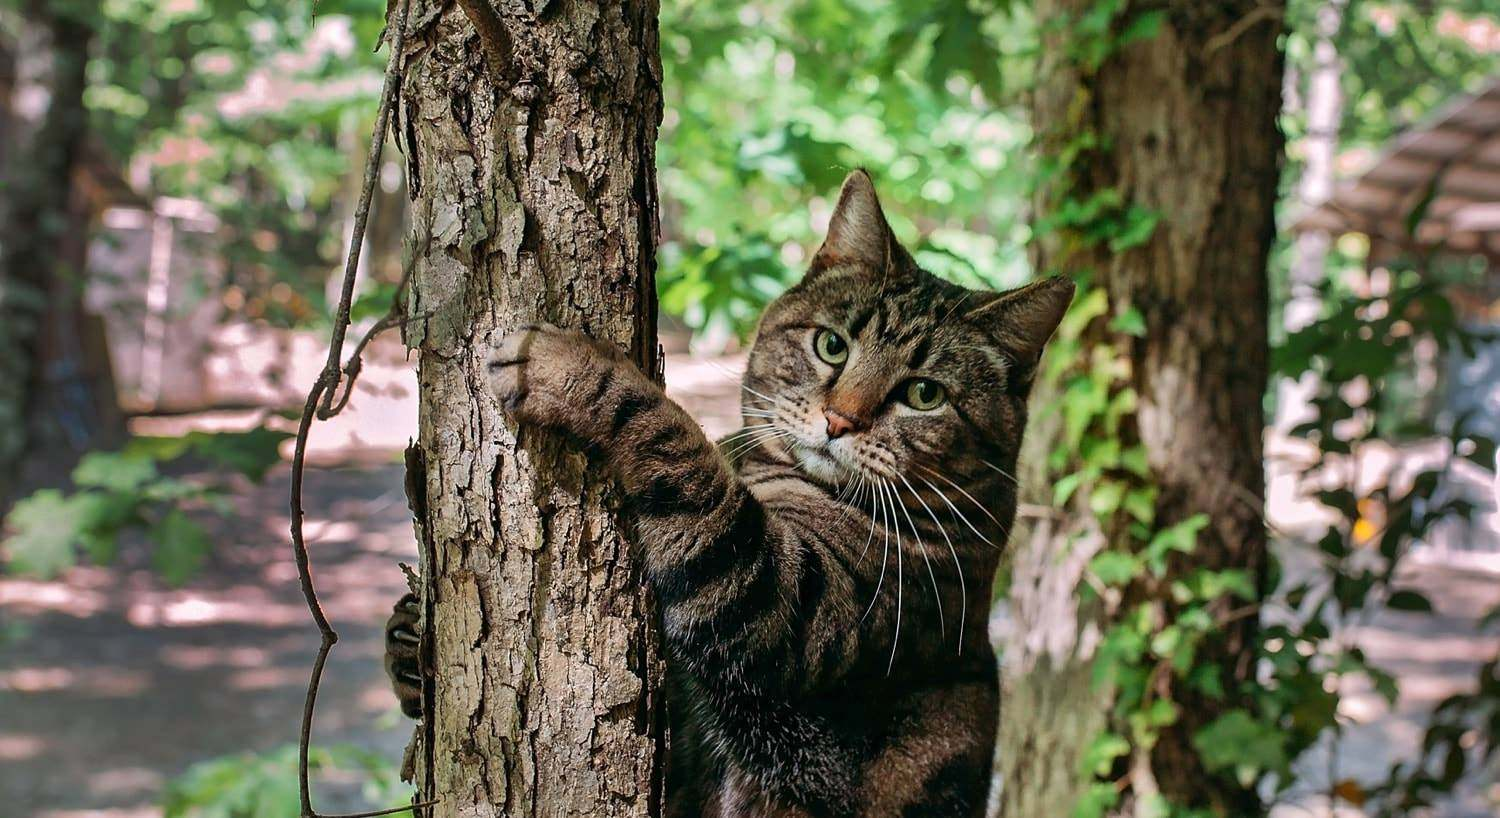 Beautiful brown and black striped cat climbing a tree